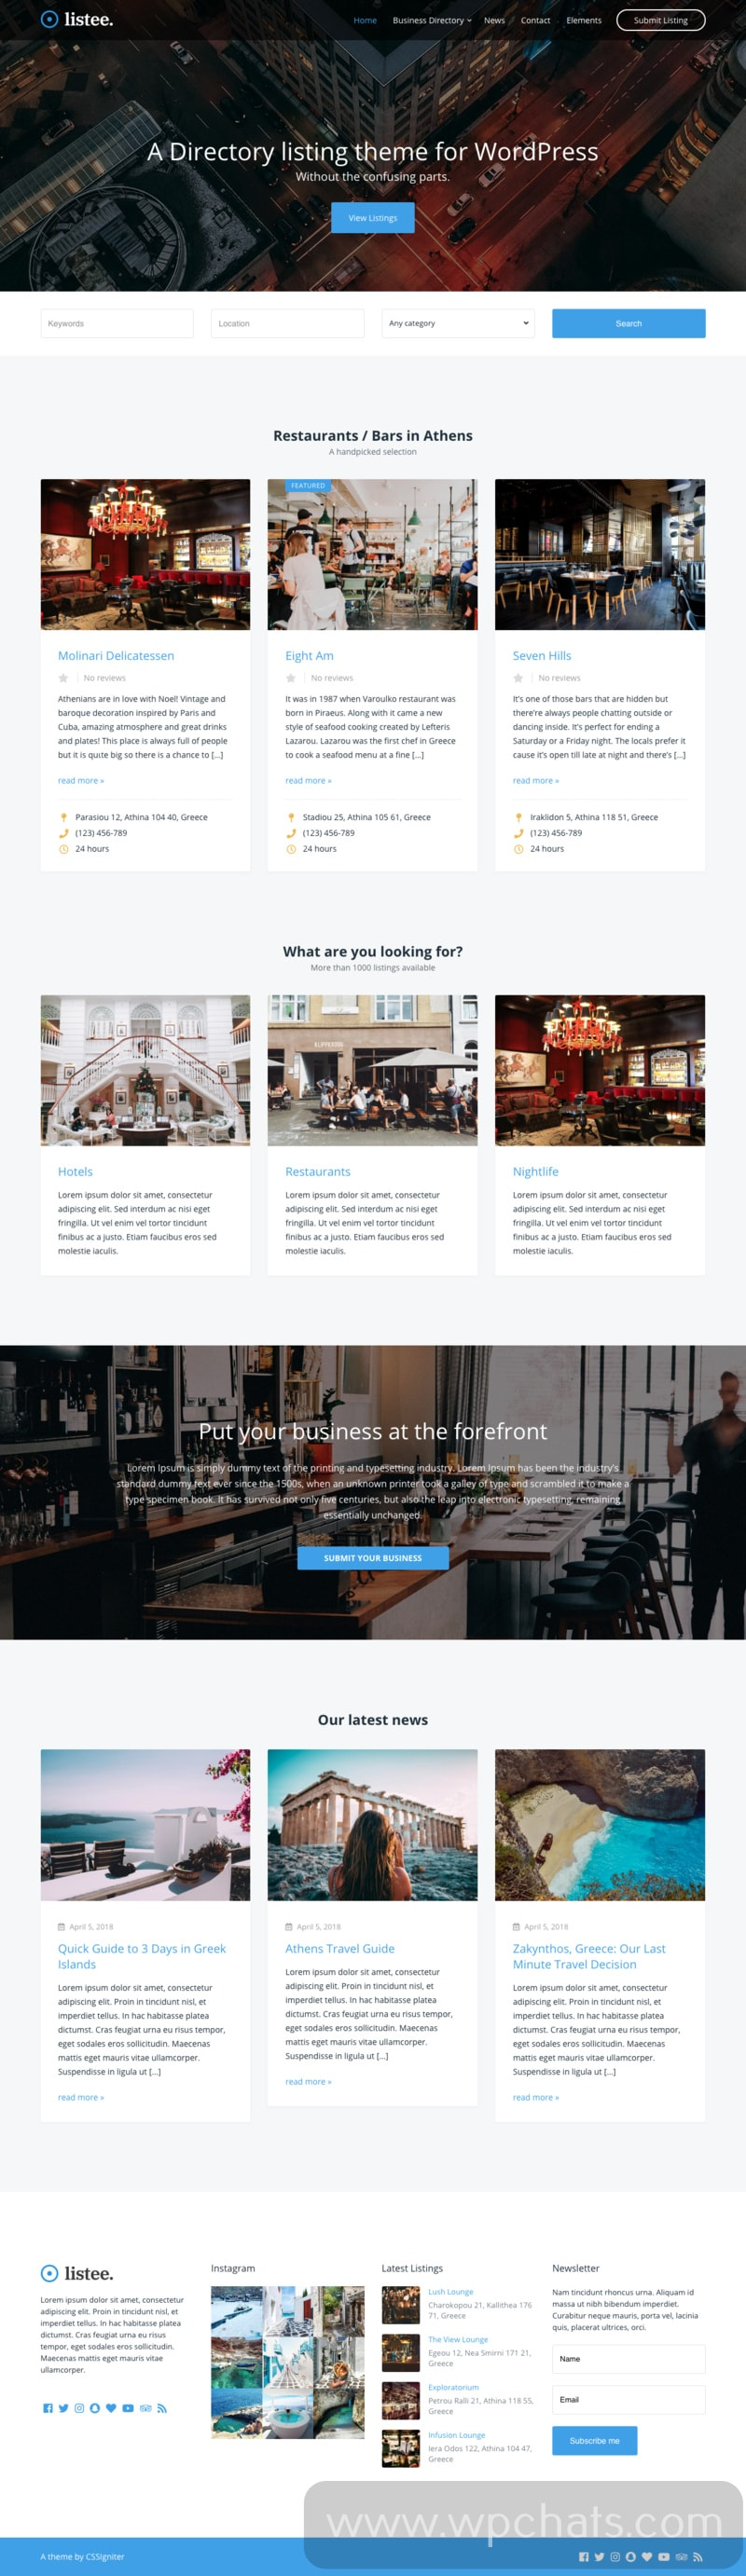 Listee WordPress Business Directory Theme